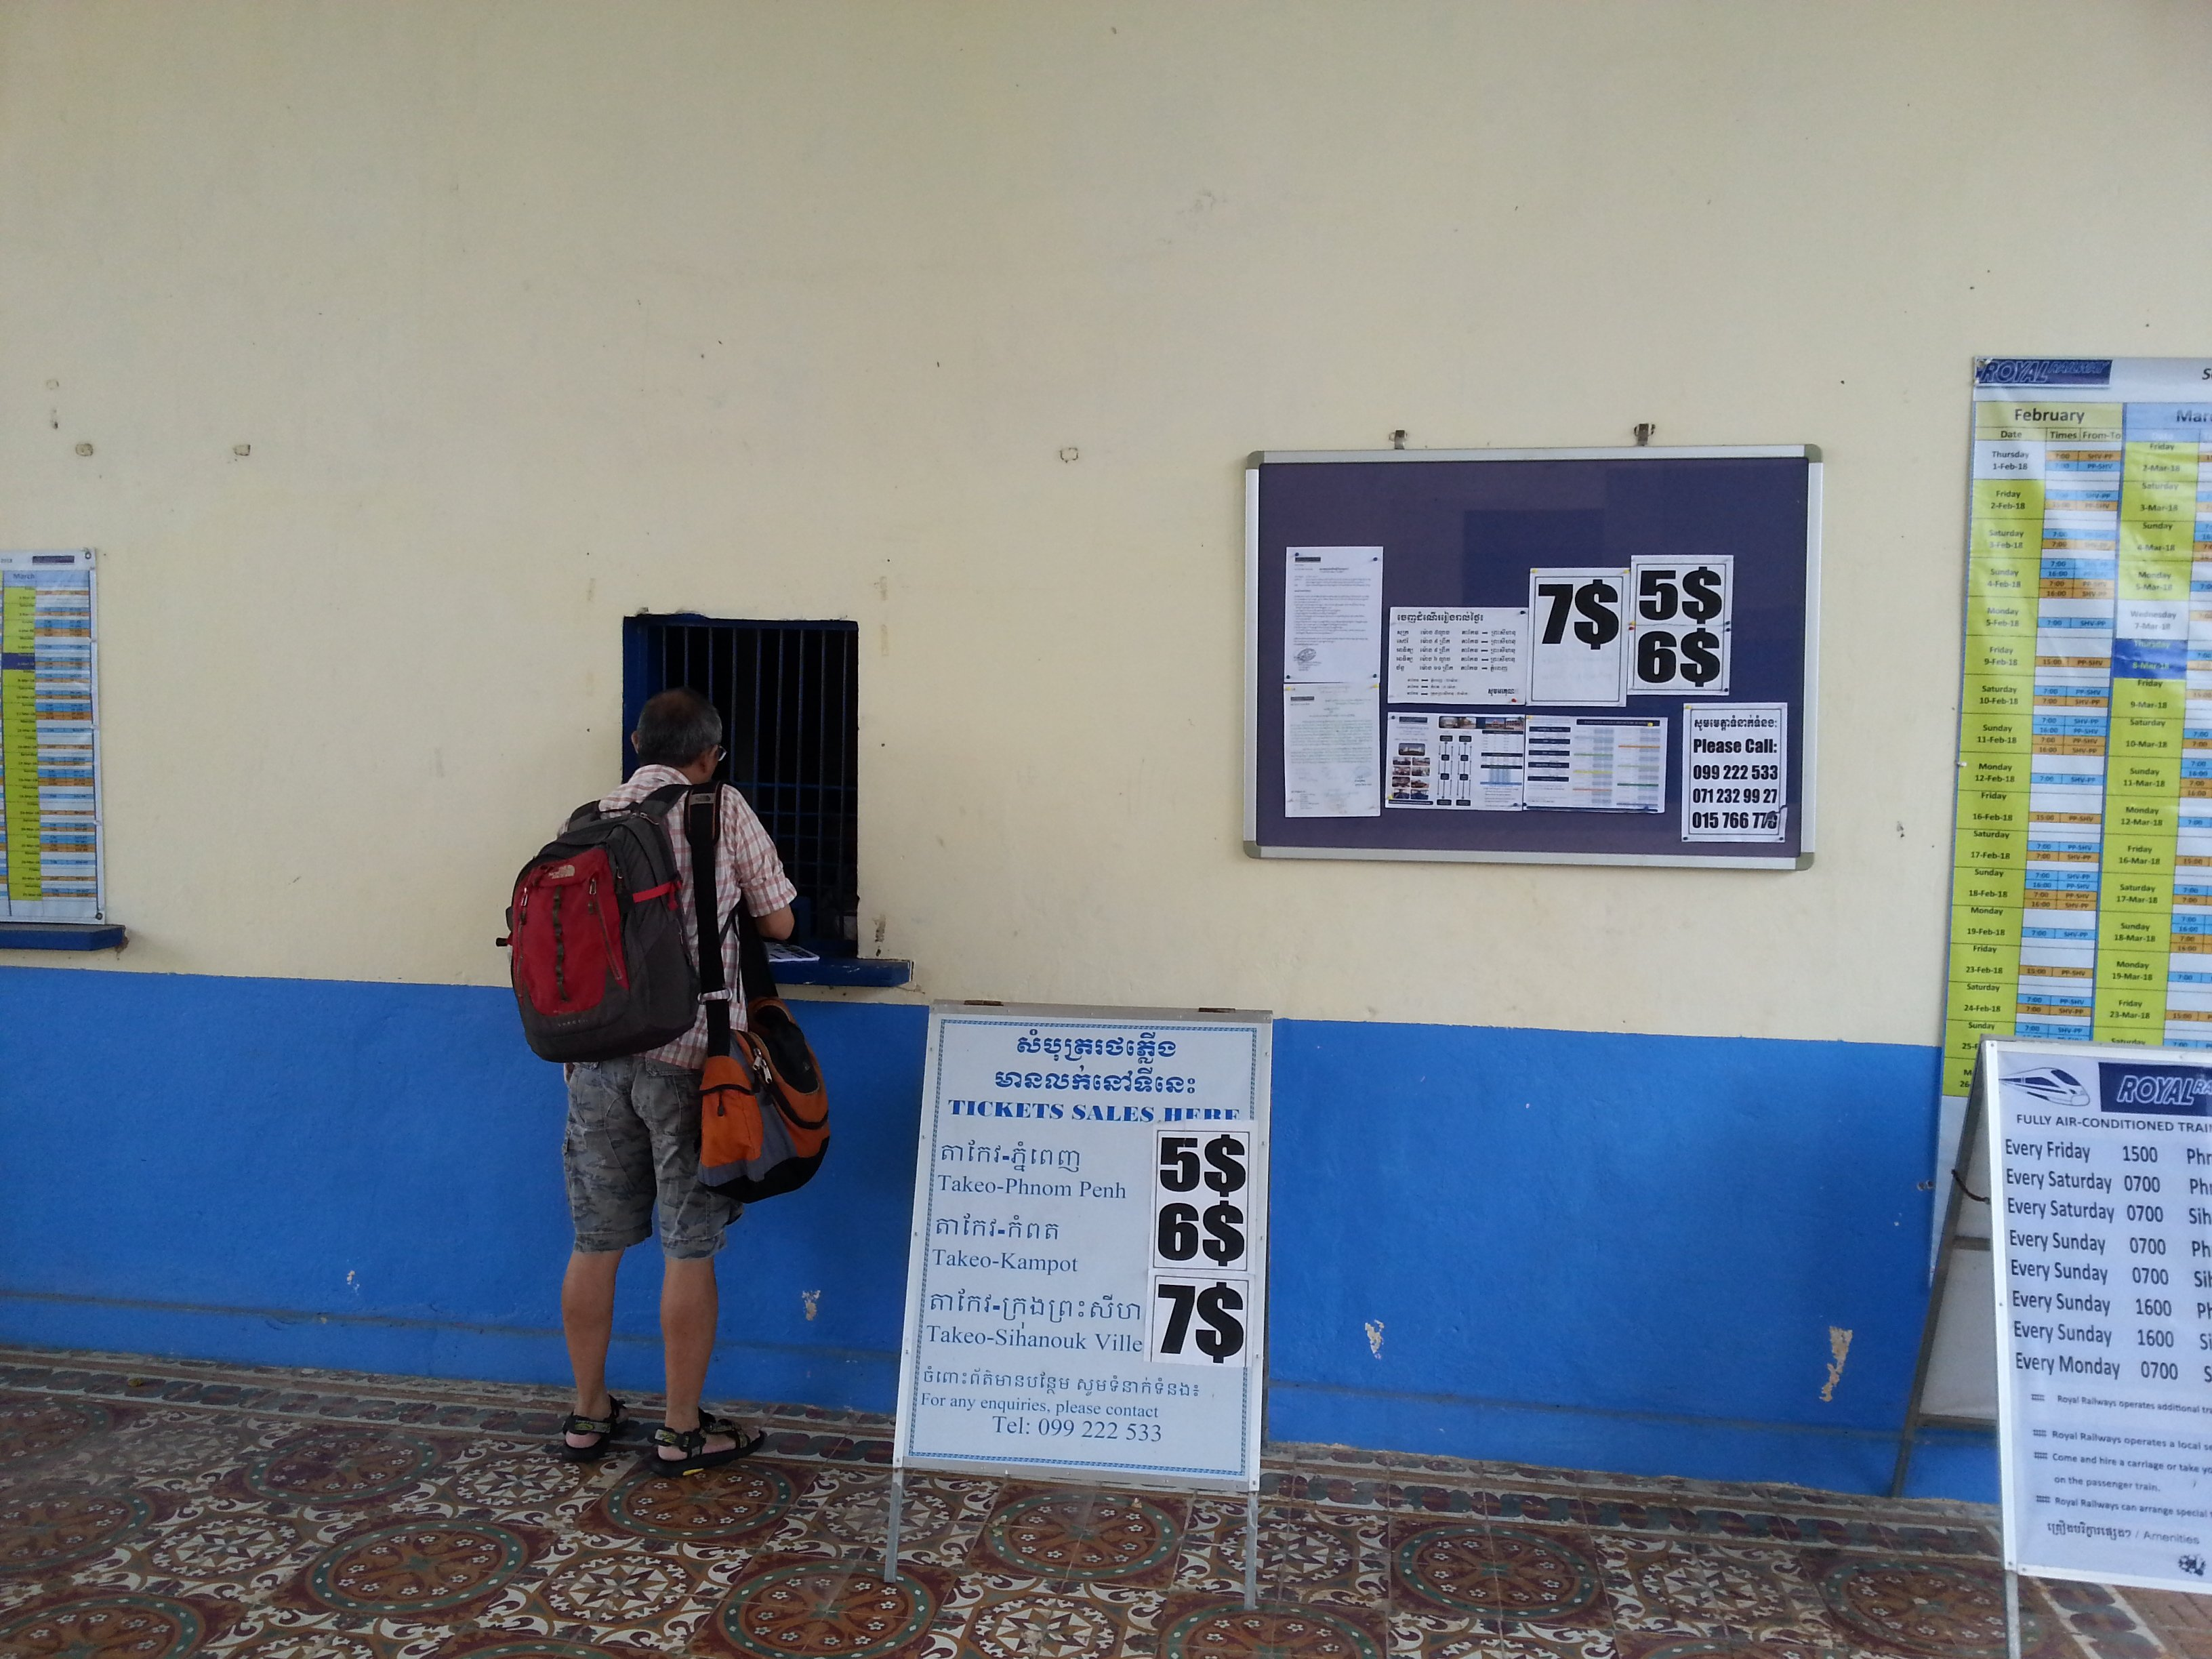 Ticket counters at Takeo Railway Station